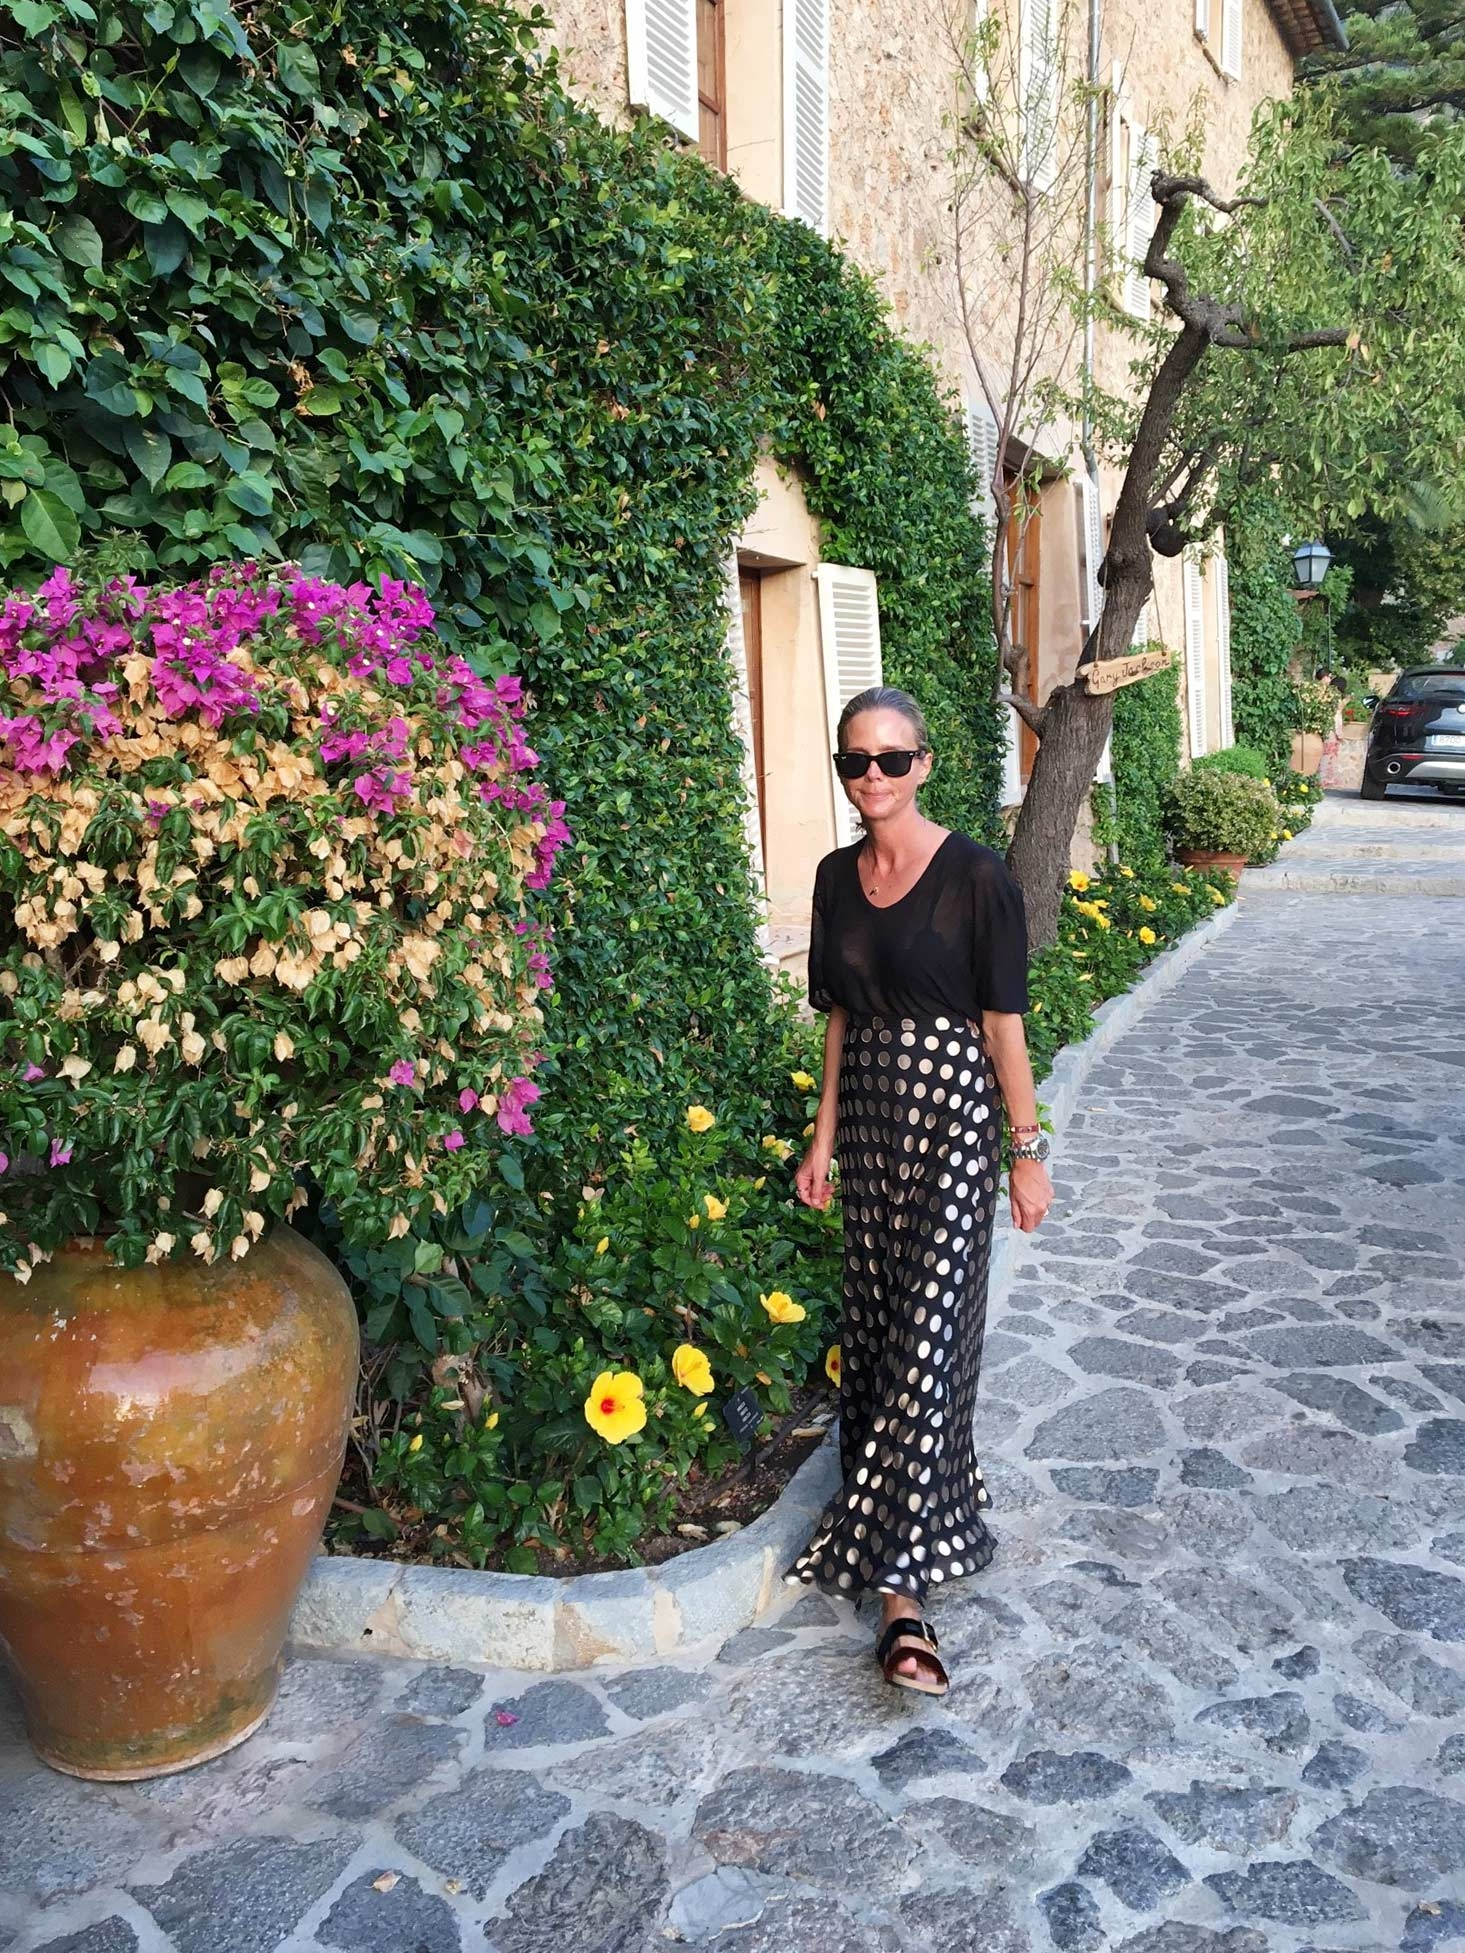 Sophie Lee strolls past lush green vines, blooming flowers and old buildings on her way to dinner